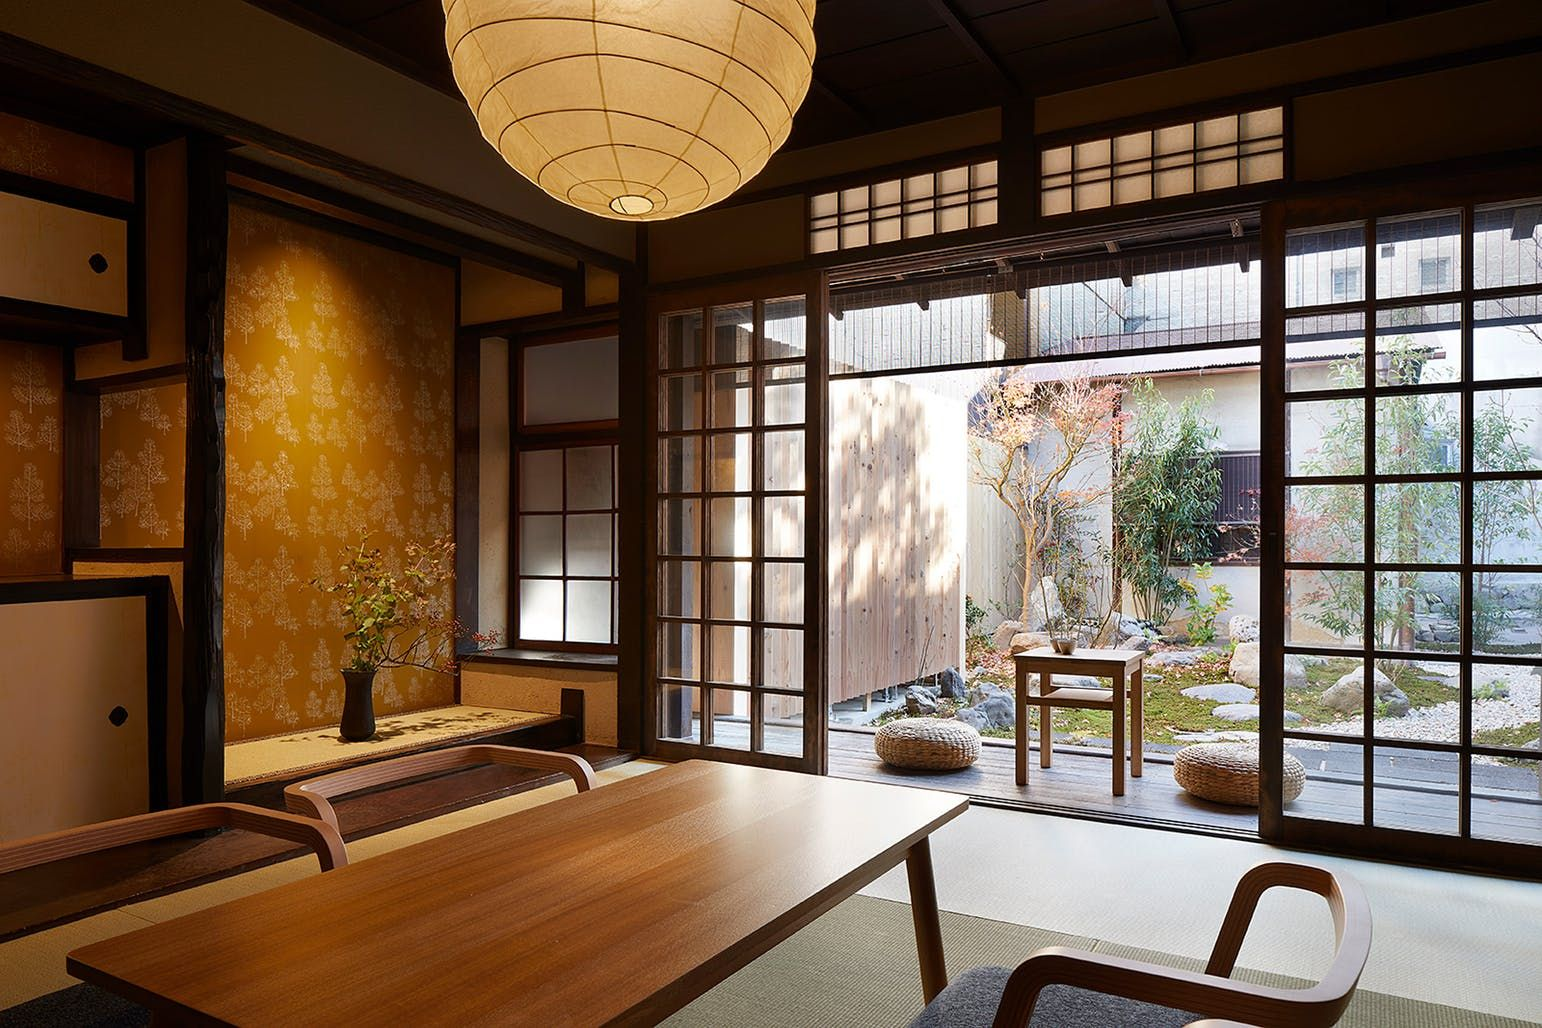 Interieur Maison Japonaise Traditionnelle blending japanese traditional and modern architecture, this